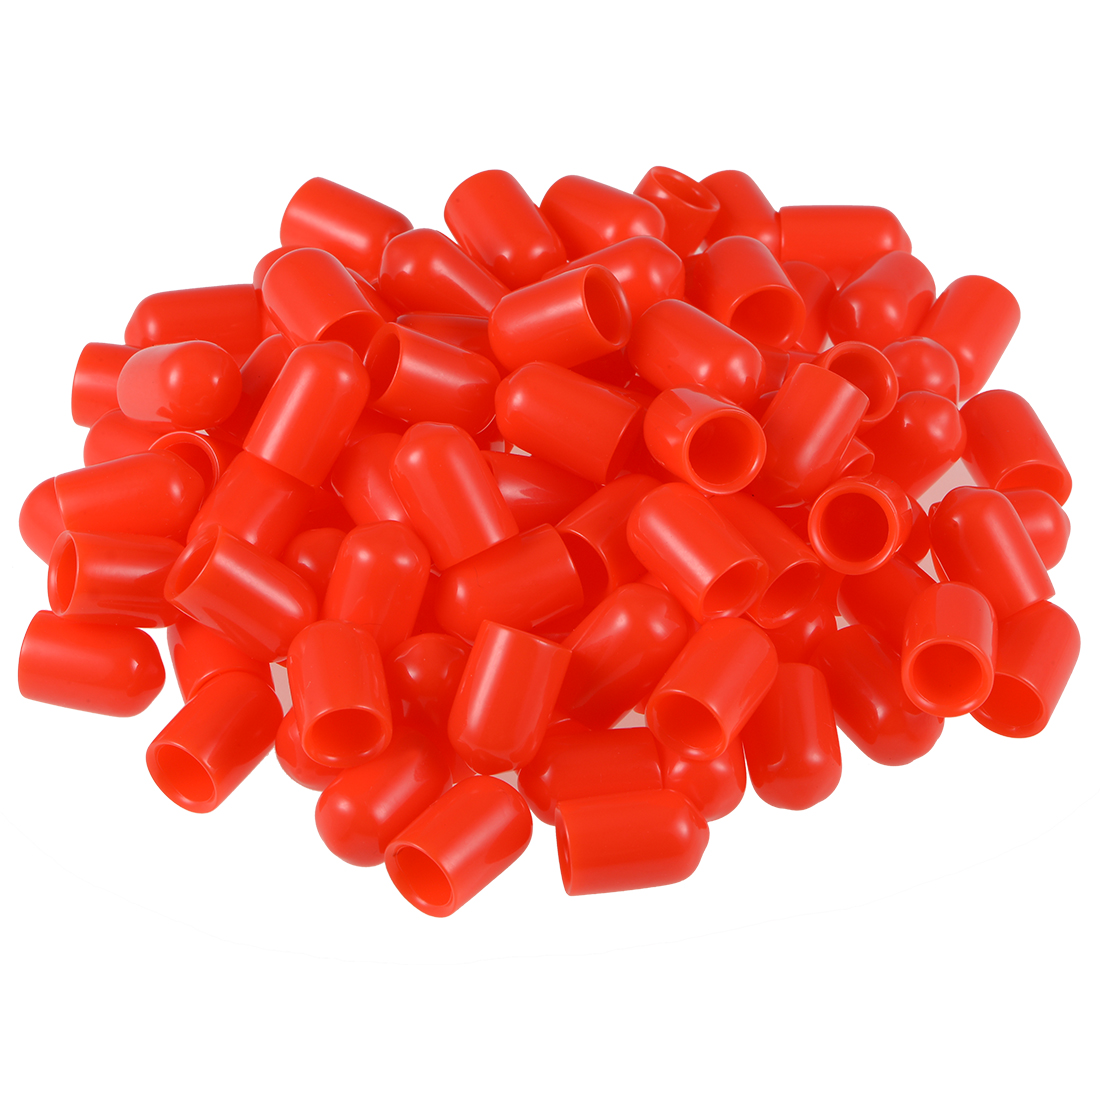 Screw Thread Protector, 8mm ID Round End Cap Cover Red Tube Caps 100pcs